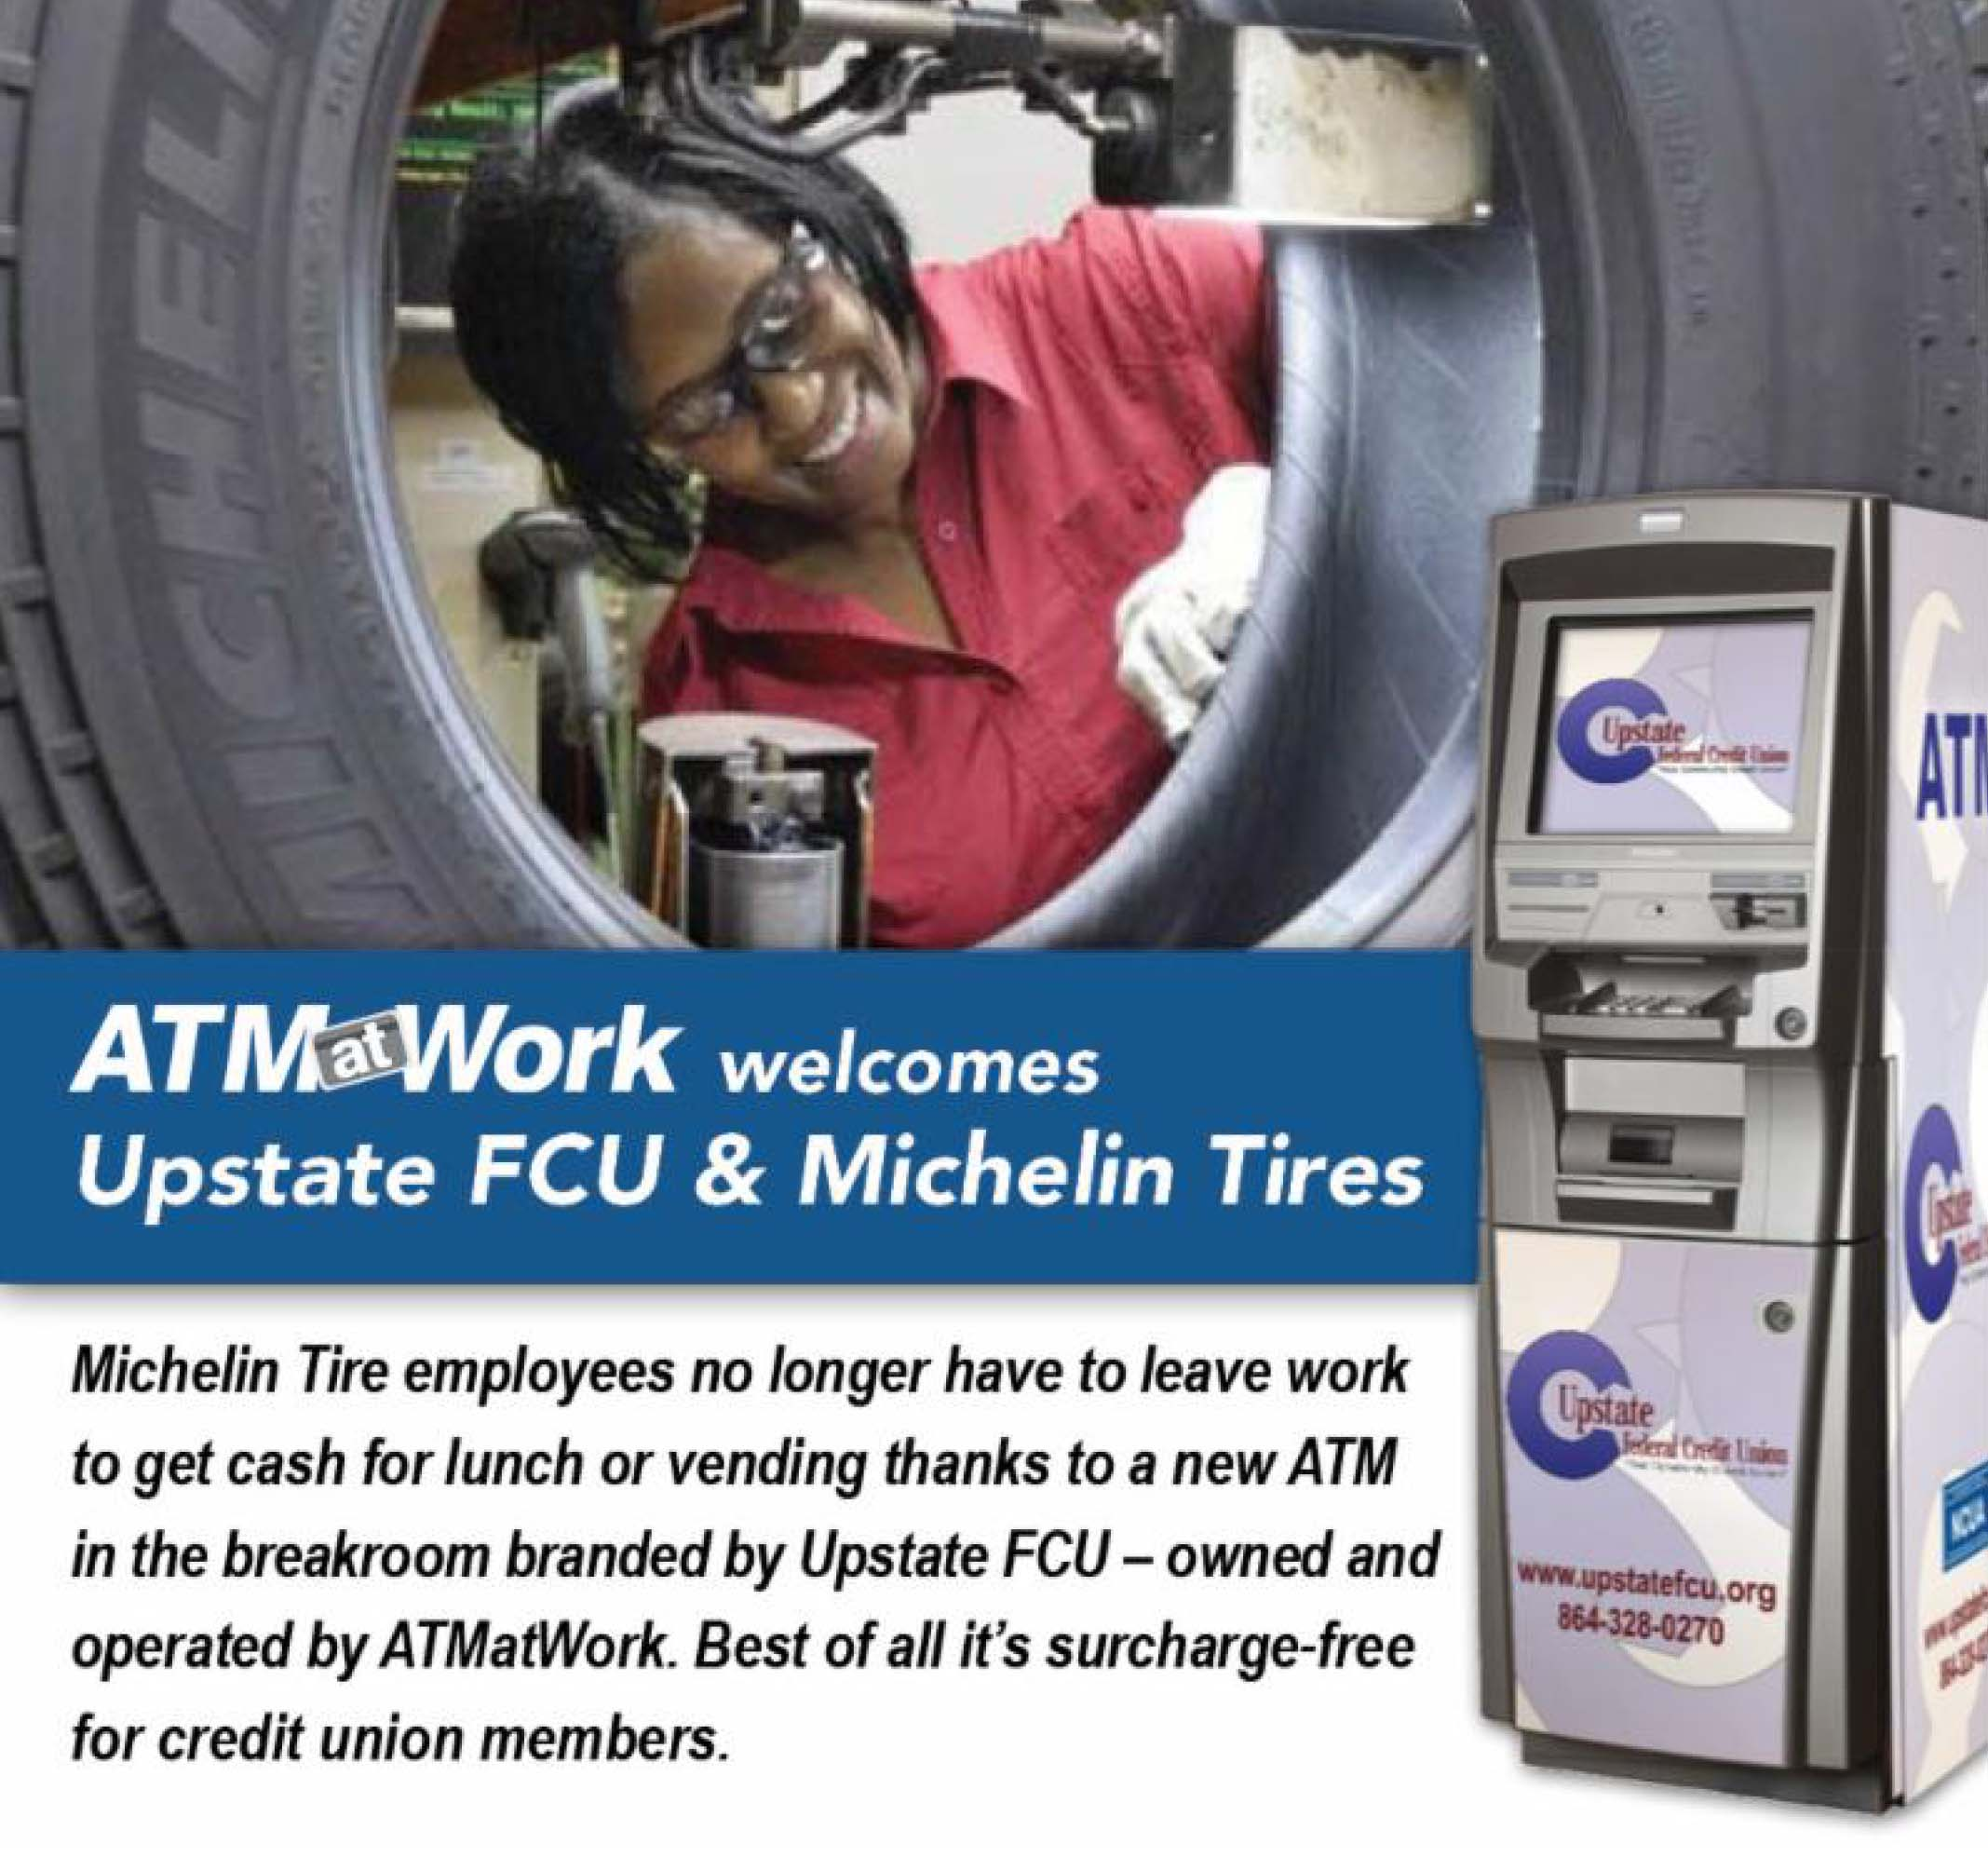 ATM at Work-Michelin Tires-Upstate FCU.jpg